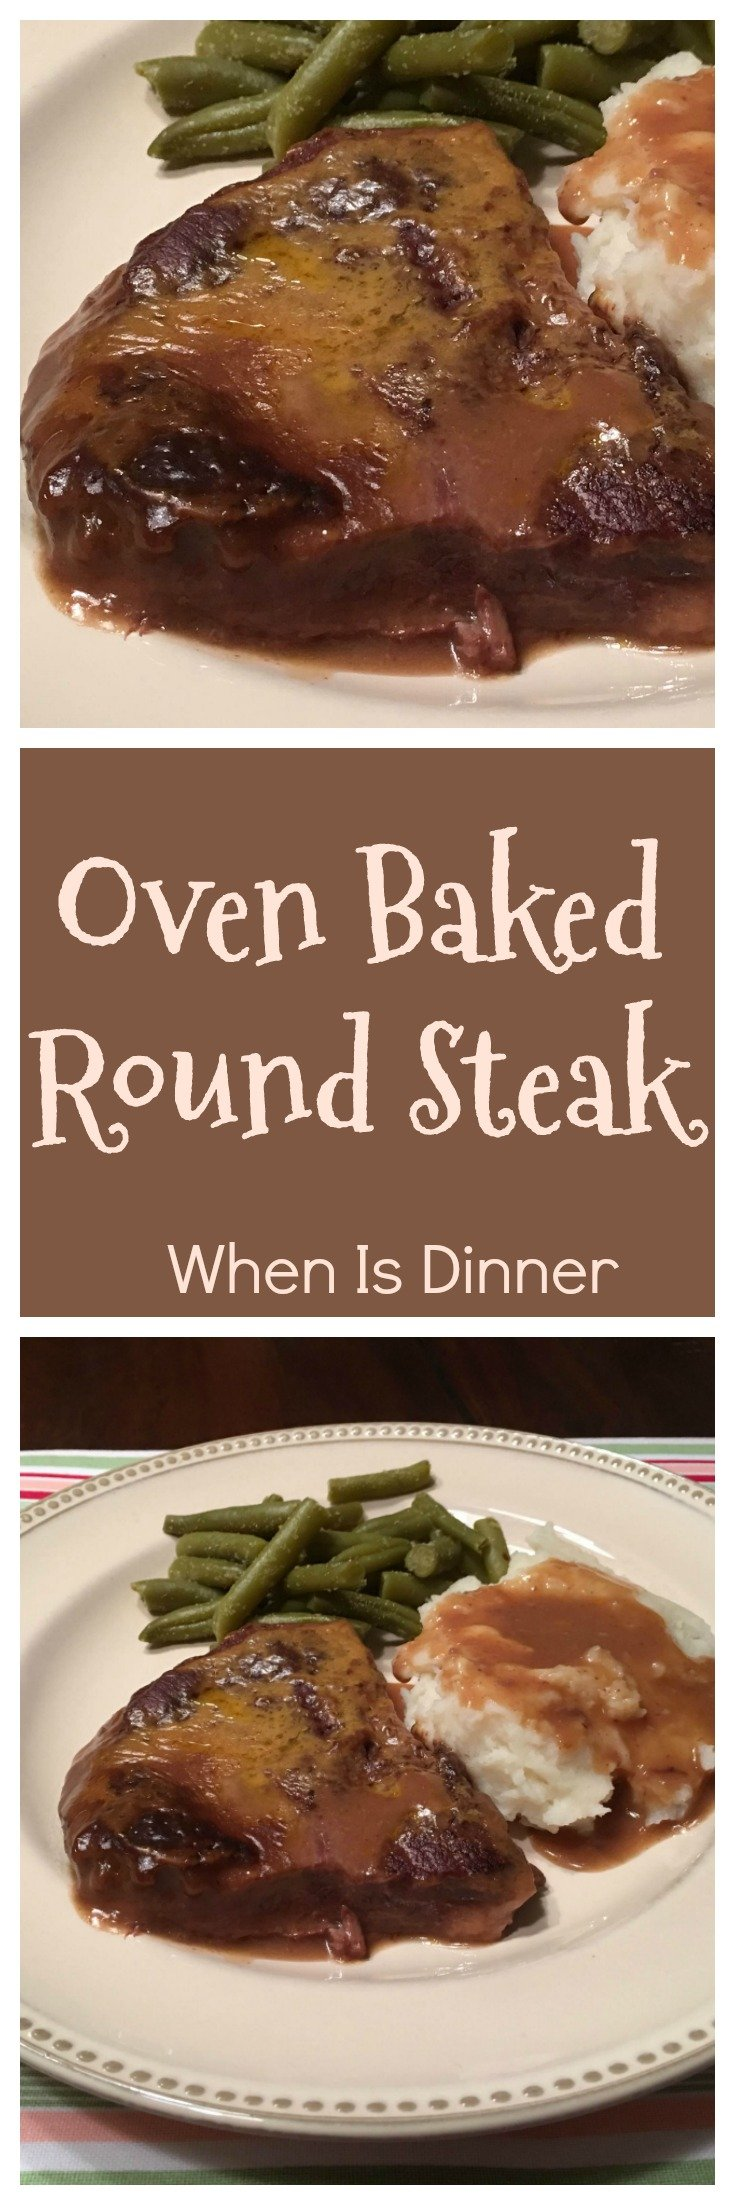 This Oven Baked Round Steak Recipe is delicious and easy to make, requiring just 5 ingredients!